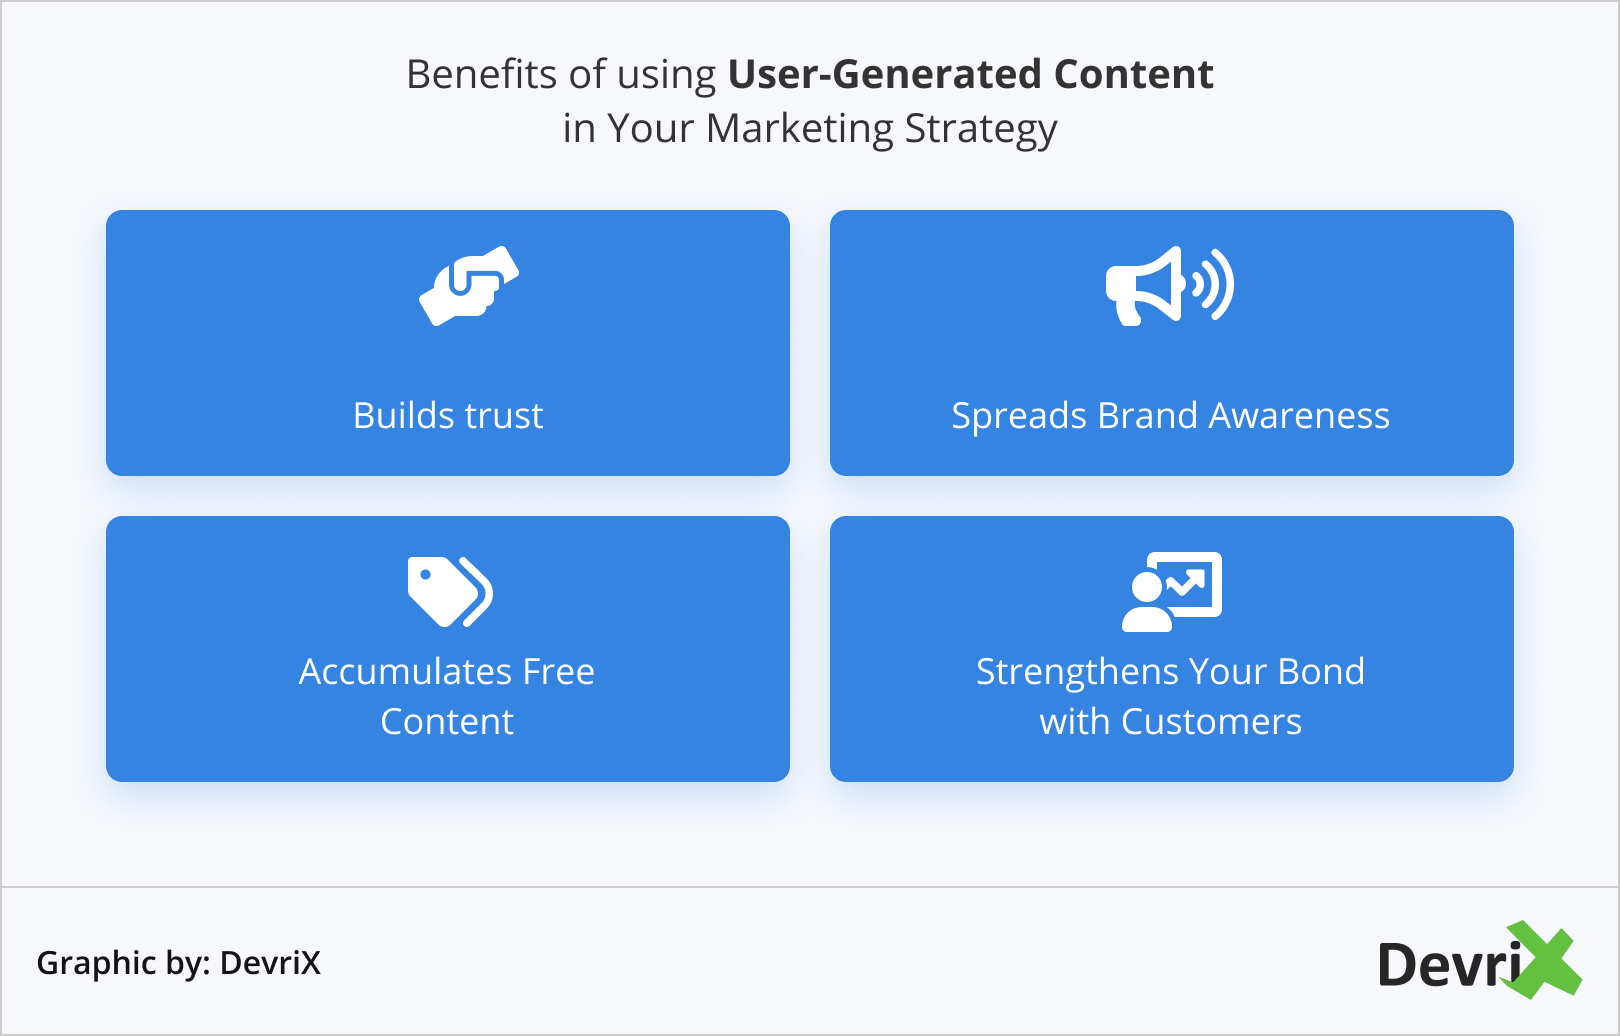 Benefits of User-Generated Content in Your Marketing Strategy